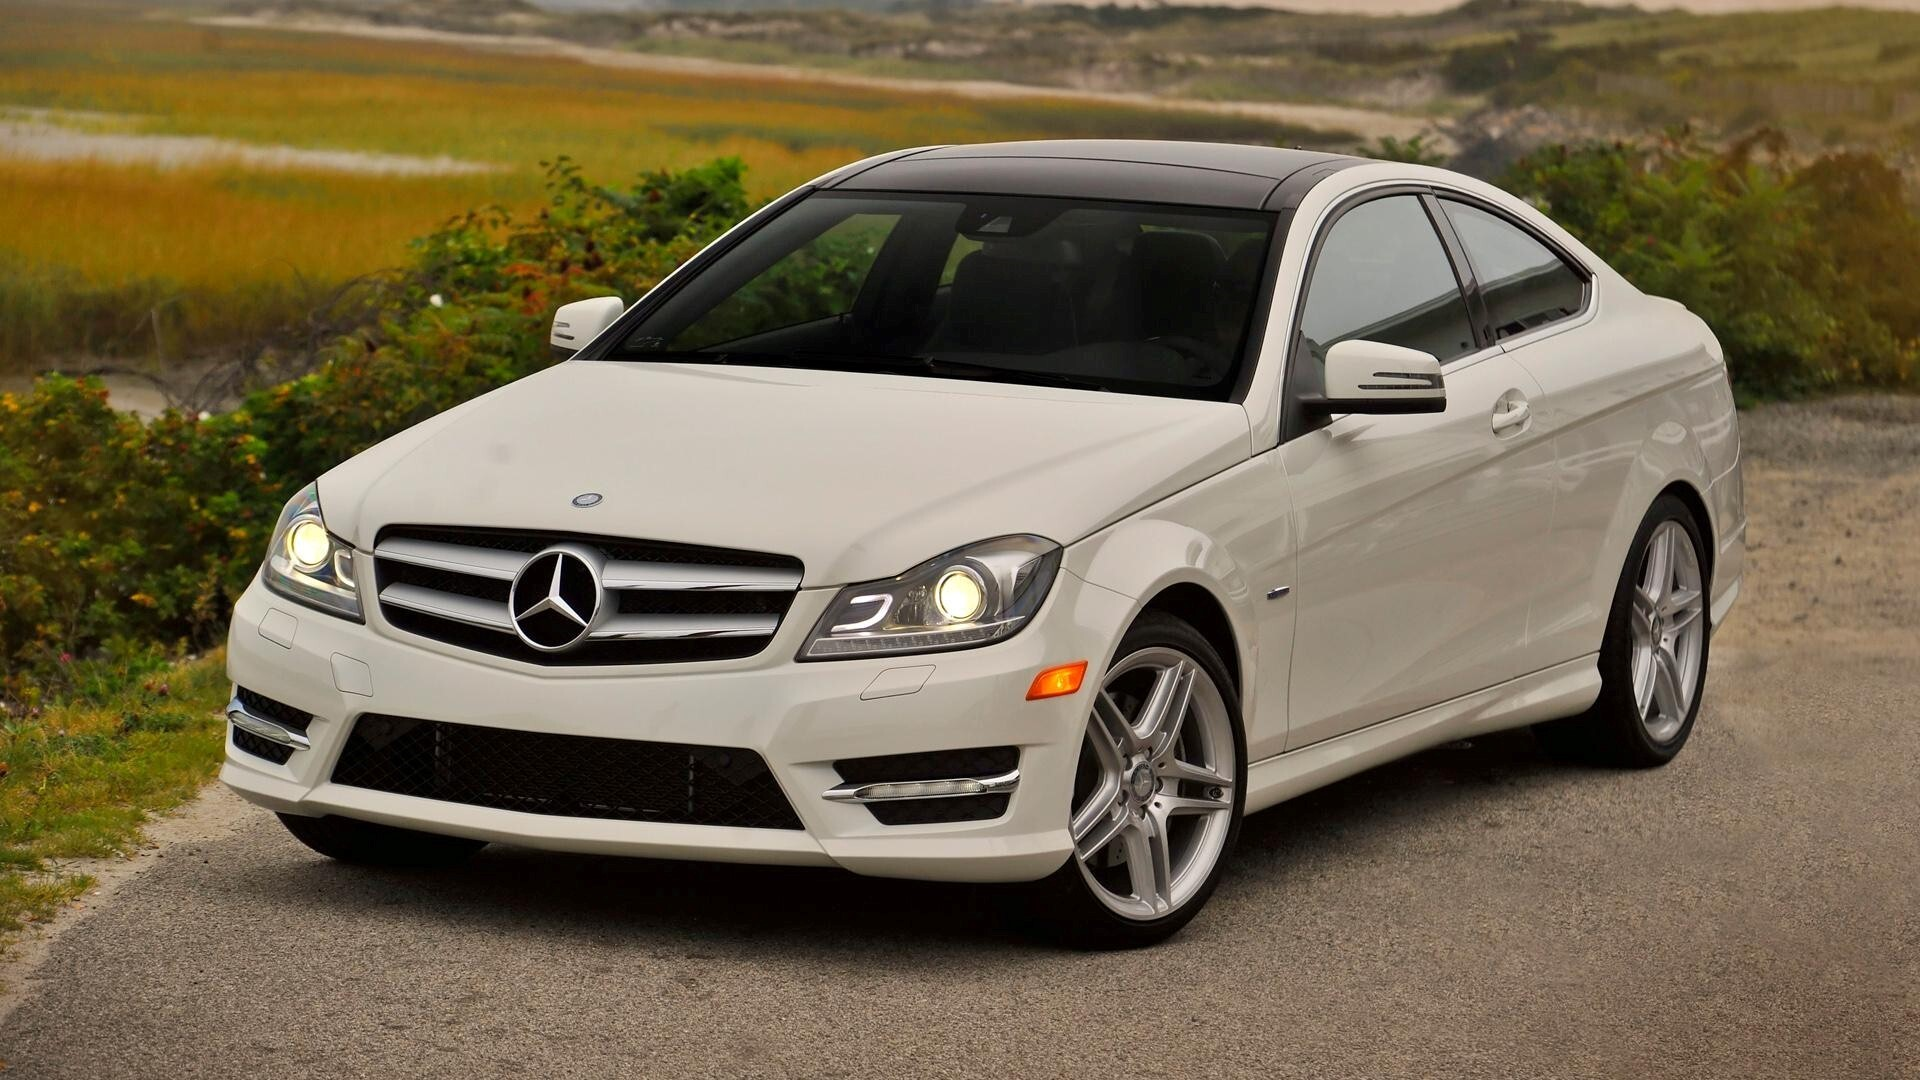 White mercedes benz c350 coupe c class car wallpaper hd for What is the newest mercedes benz